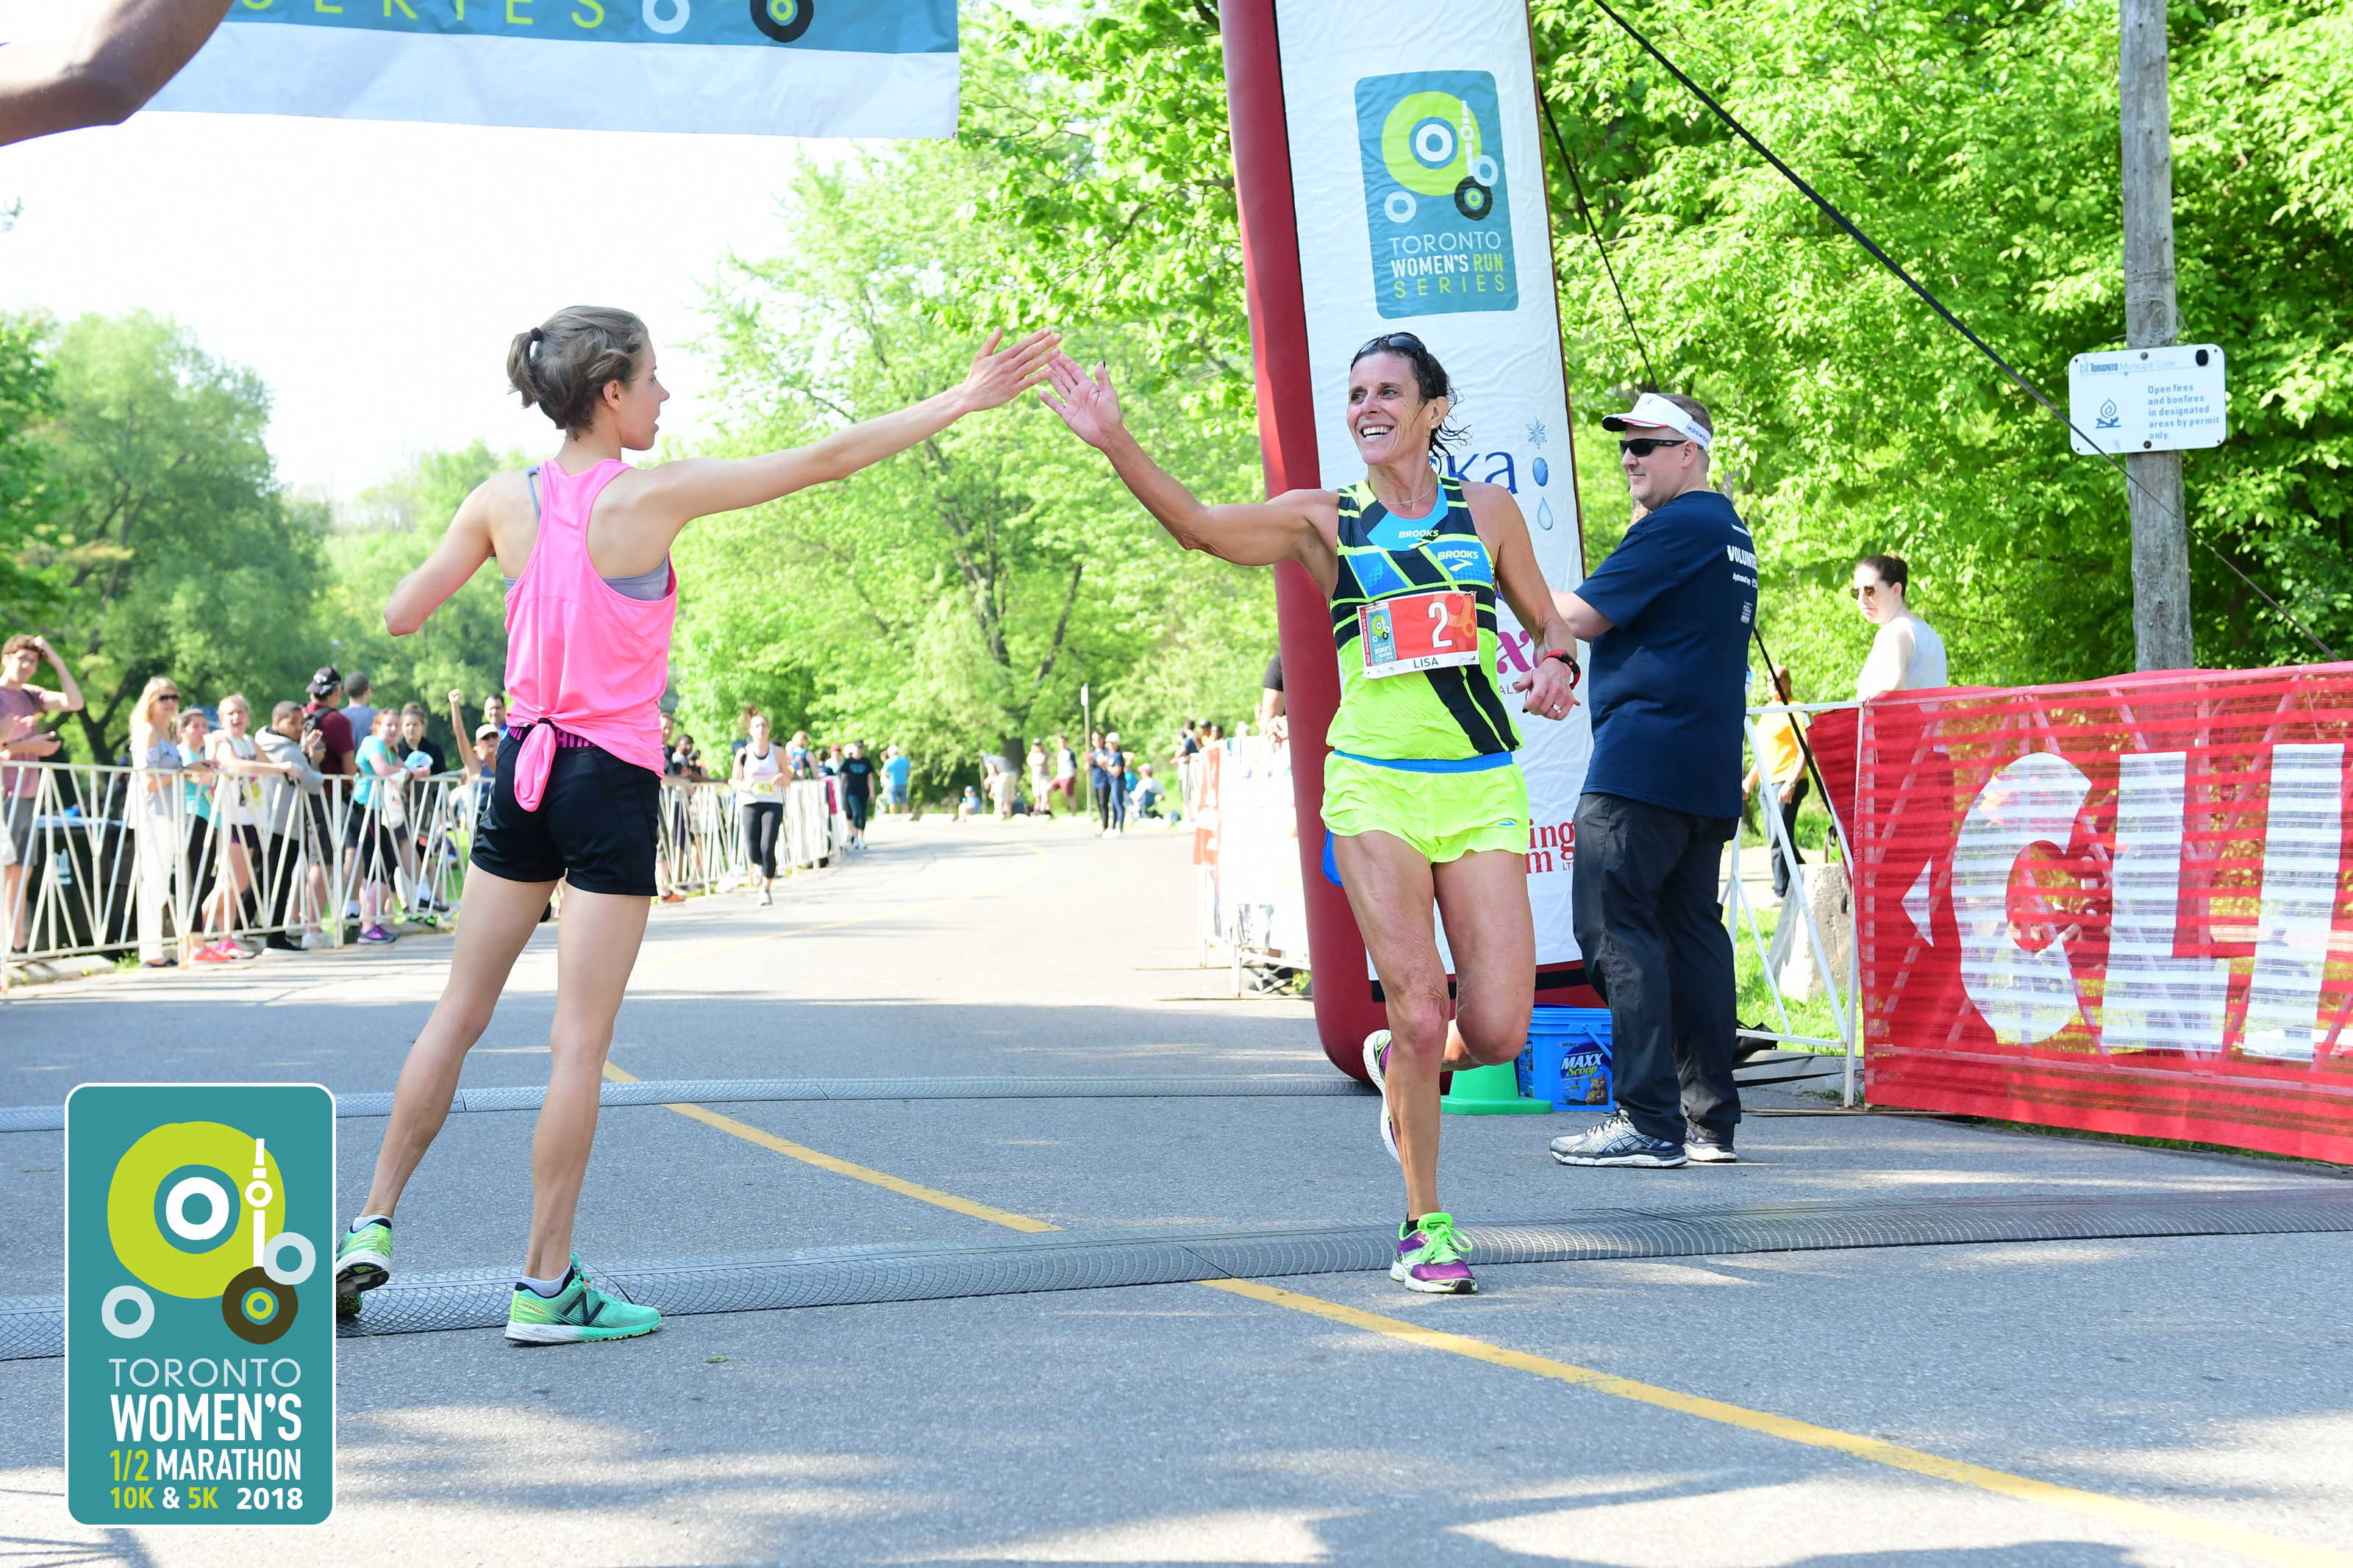 Lisa Bentley crossing finish line in marathon and high fiving volunteer